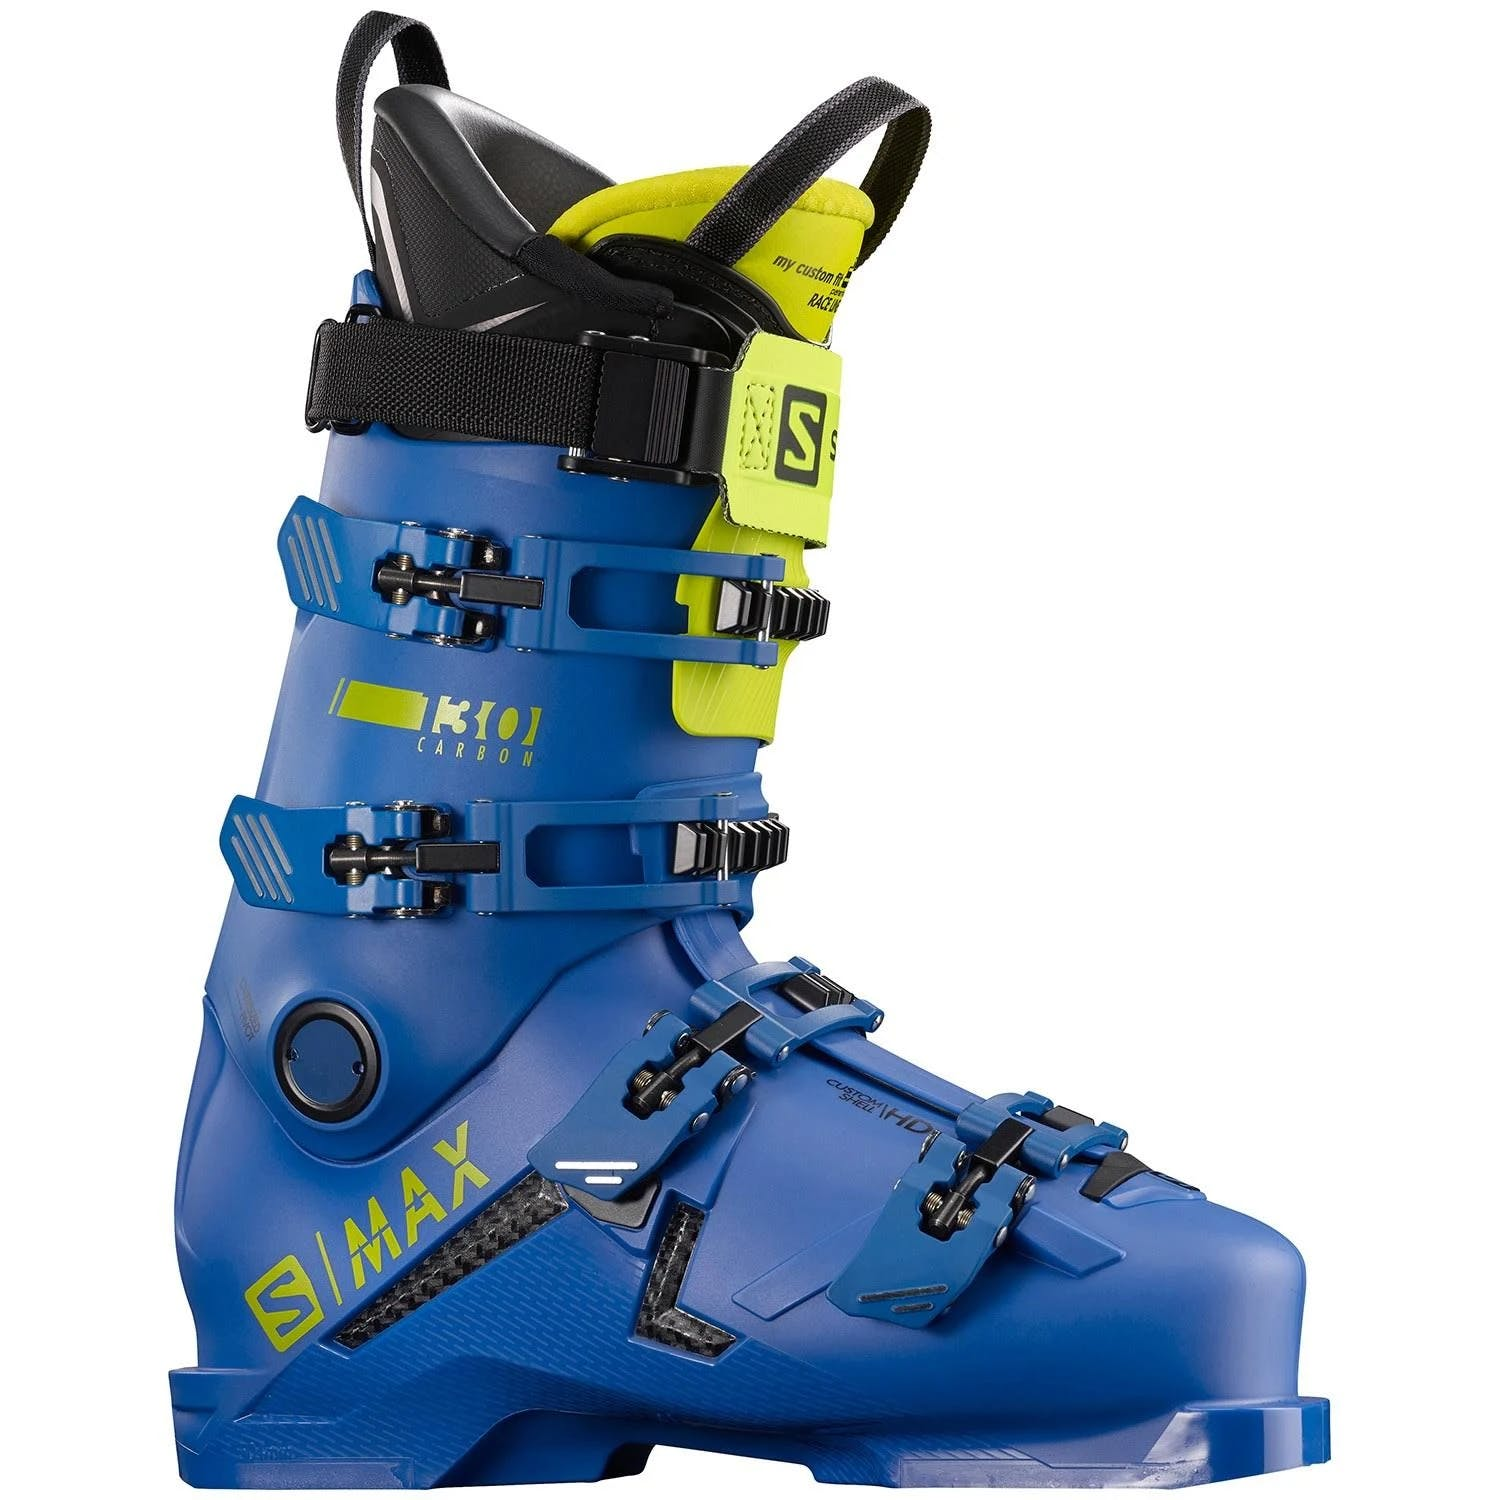 Salomon S/max 130 Carbon Ski Boots Race Blue-acid Green 26.5